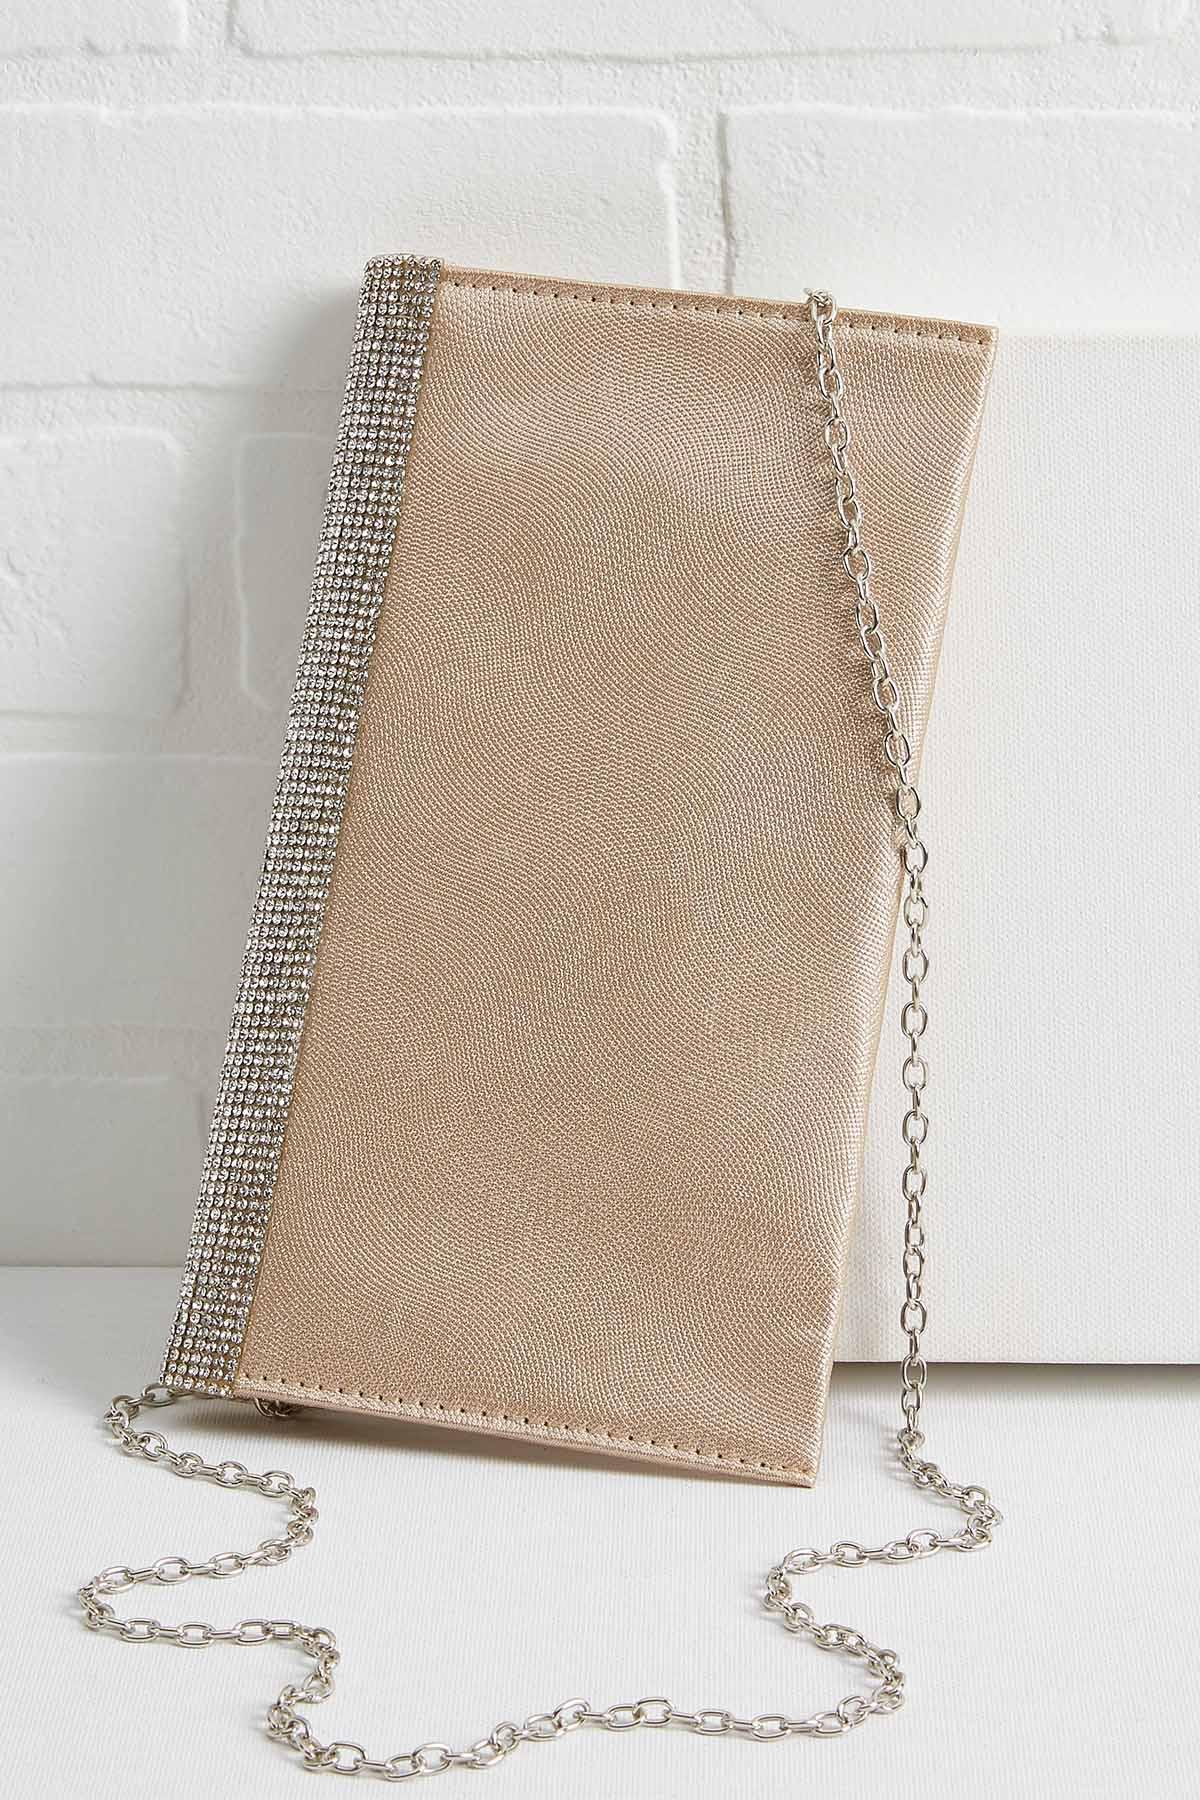 All That Glitters Is Gold Clutch